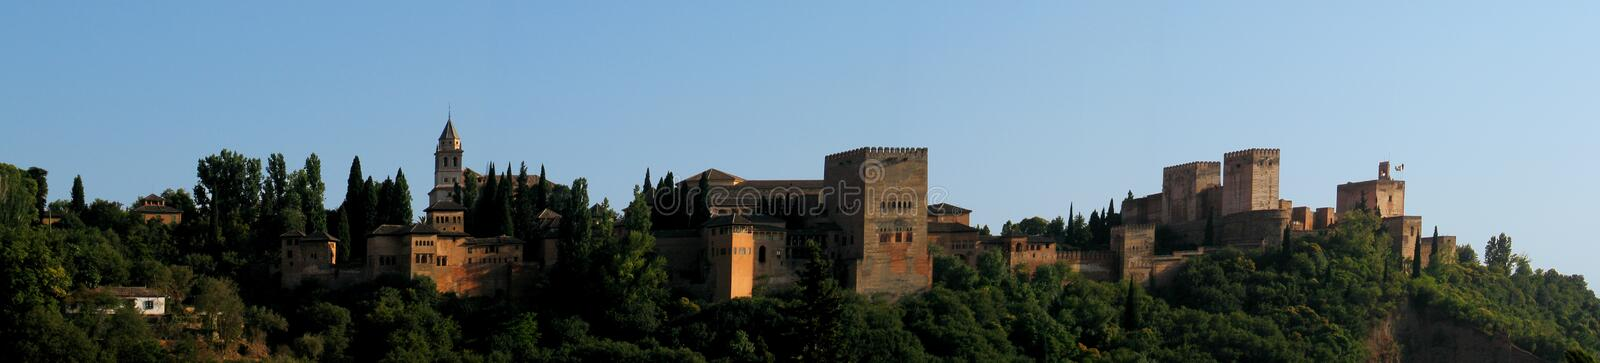 Download Castle stock image. Image of antique, historic, house, spain - 175779